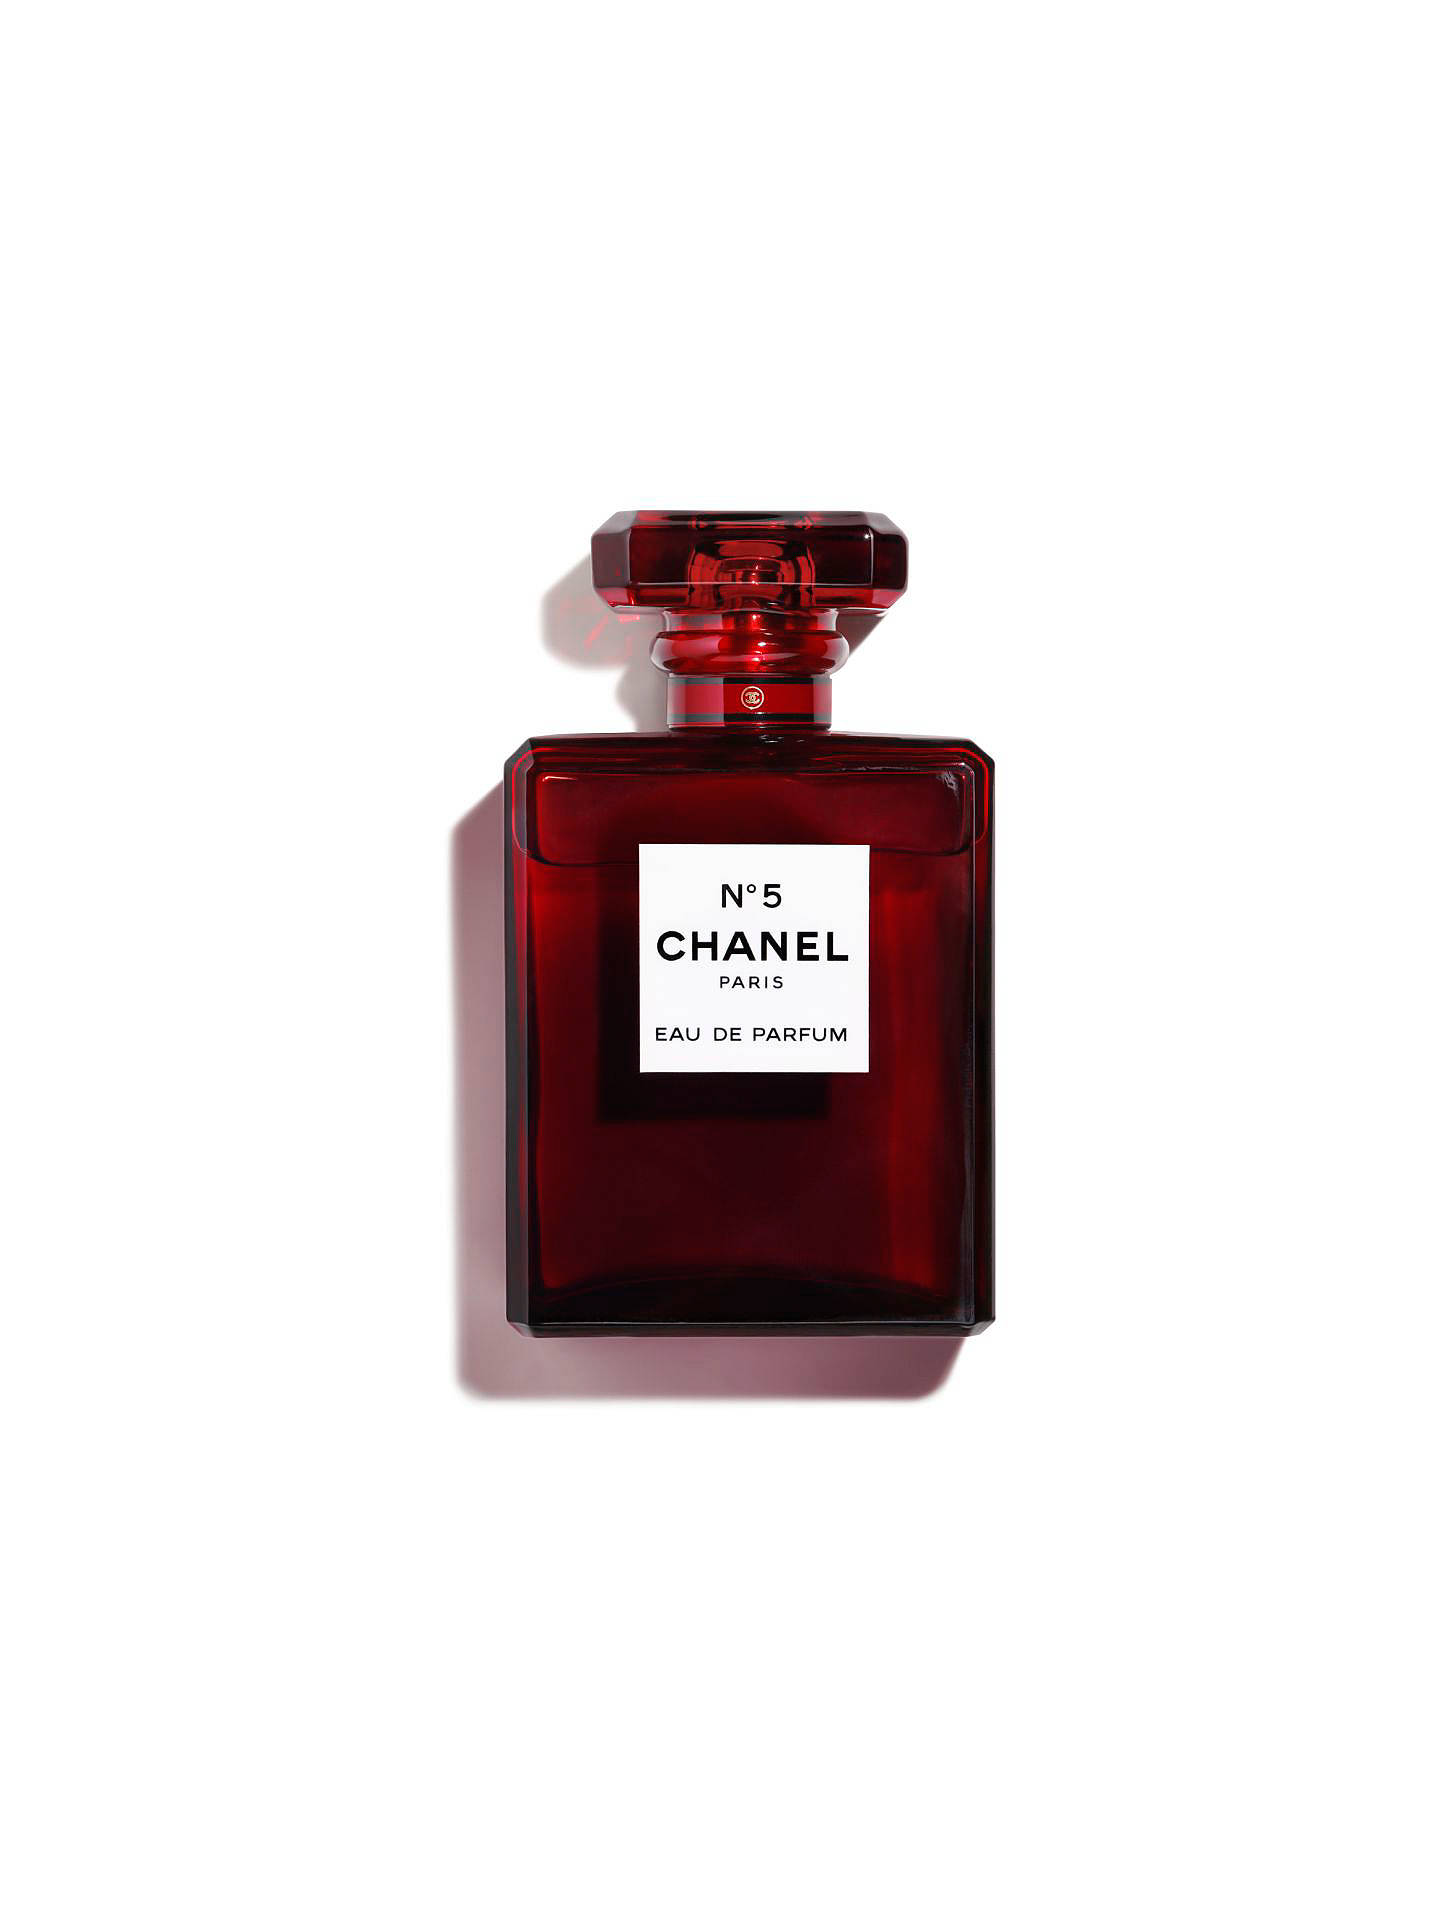 BuyCHANEL N°5 N°5 Eau de Parfum Limited Edition, 100ml Online at johnlewis.com